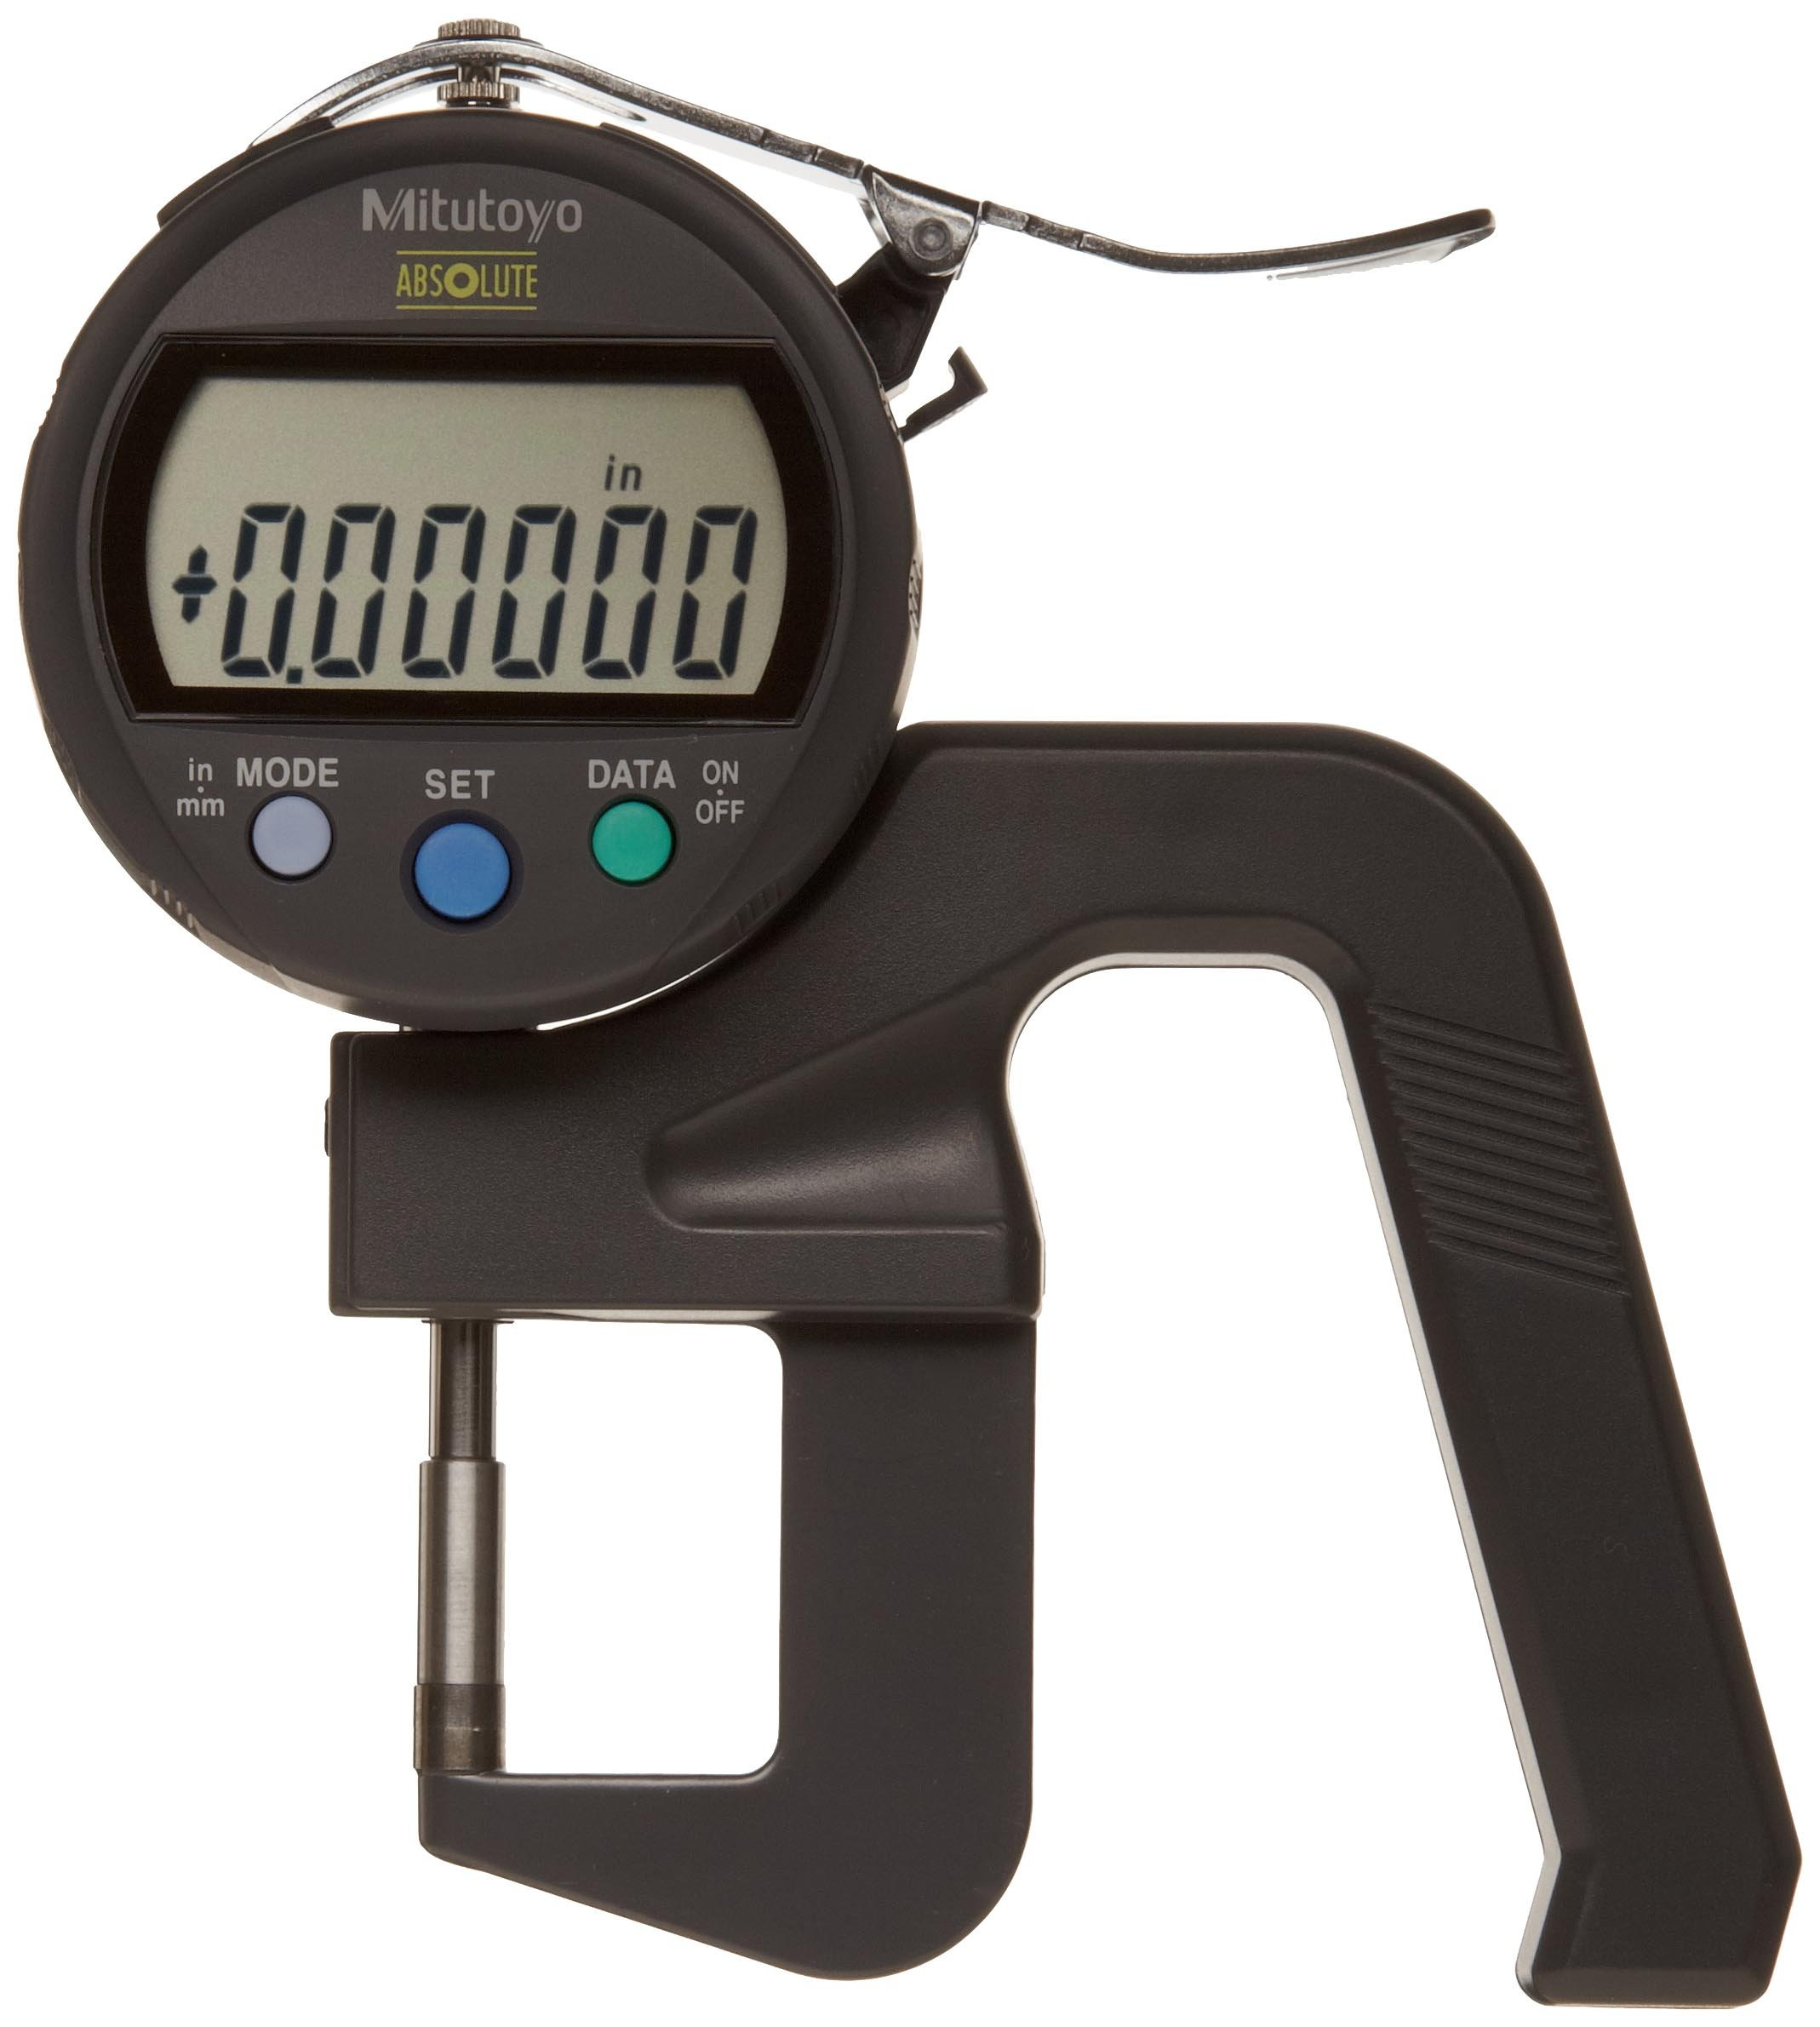 Mitutoyo 547-400S Digimatic IDC Thickness Gage, Flat Anvil, High Accuracy Type, 0 - 0.47''/0-12mm Range, 0.00005''/0.001mm Resolution, +/-0.00015'' Accuracy